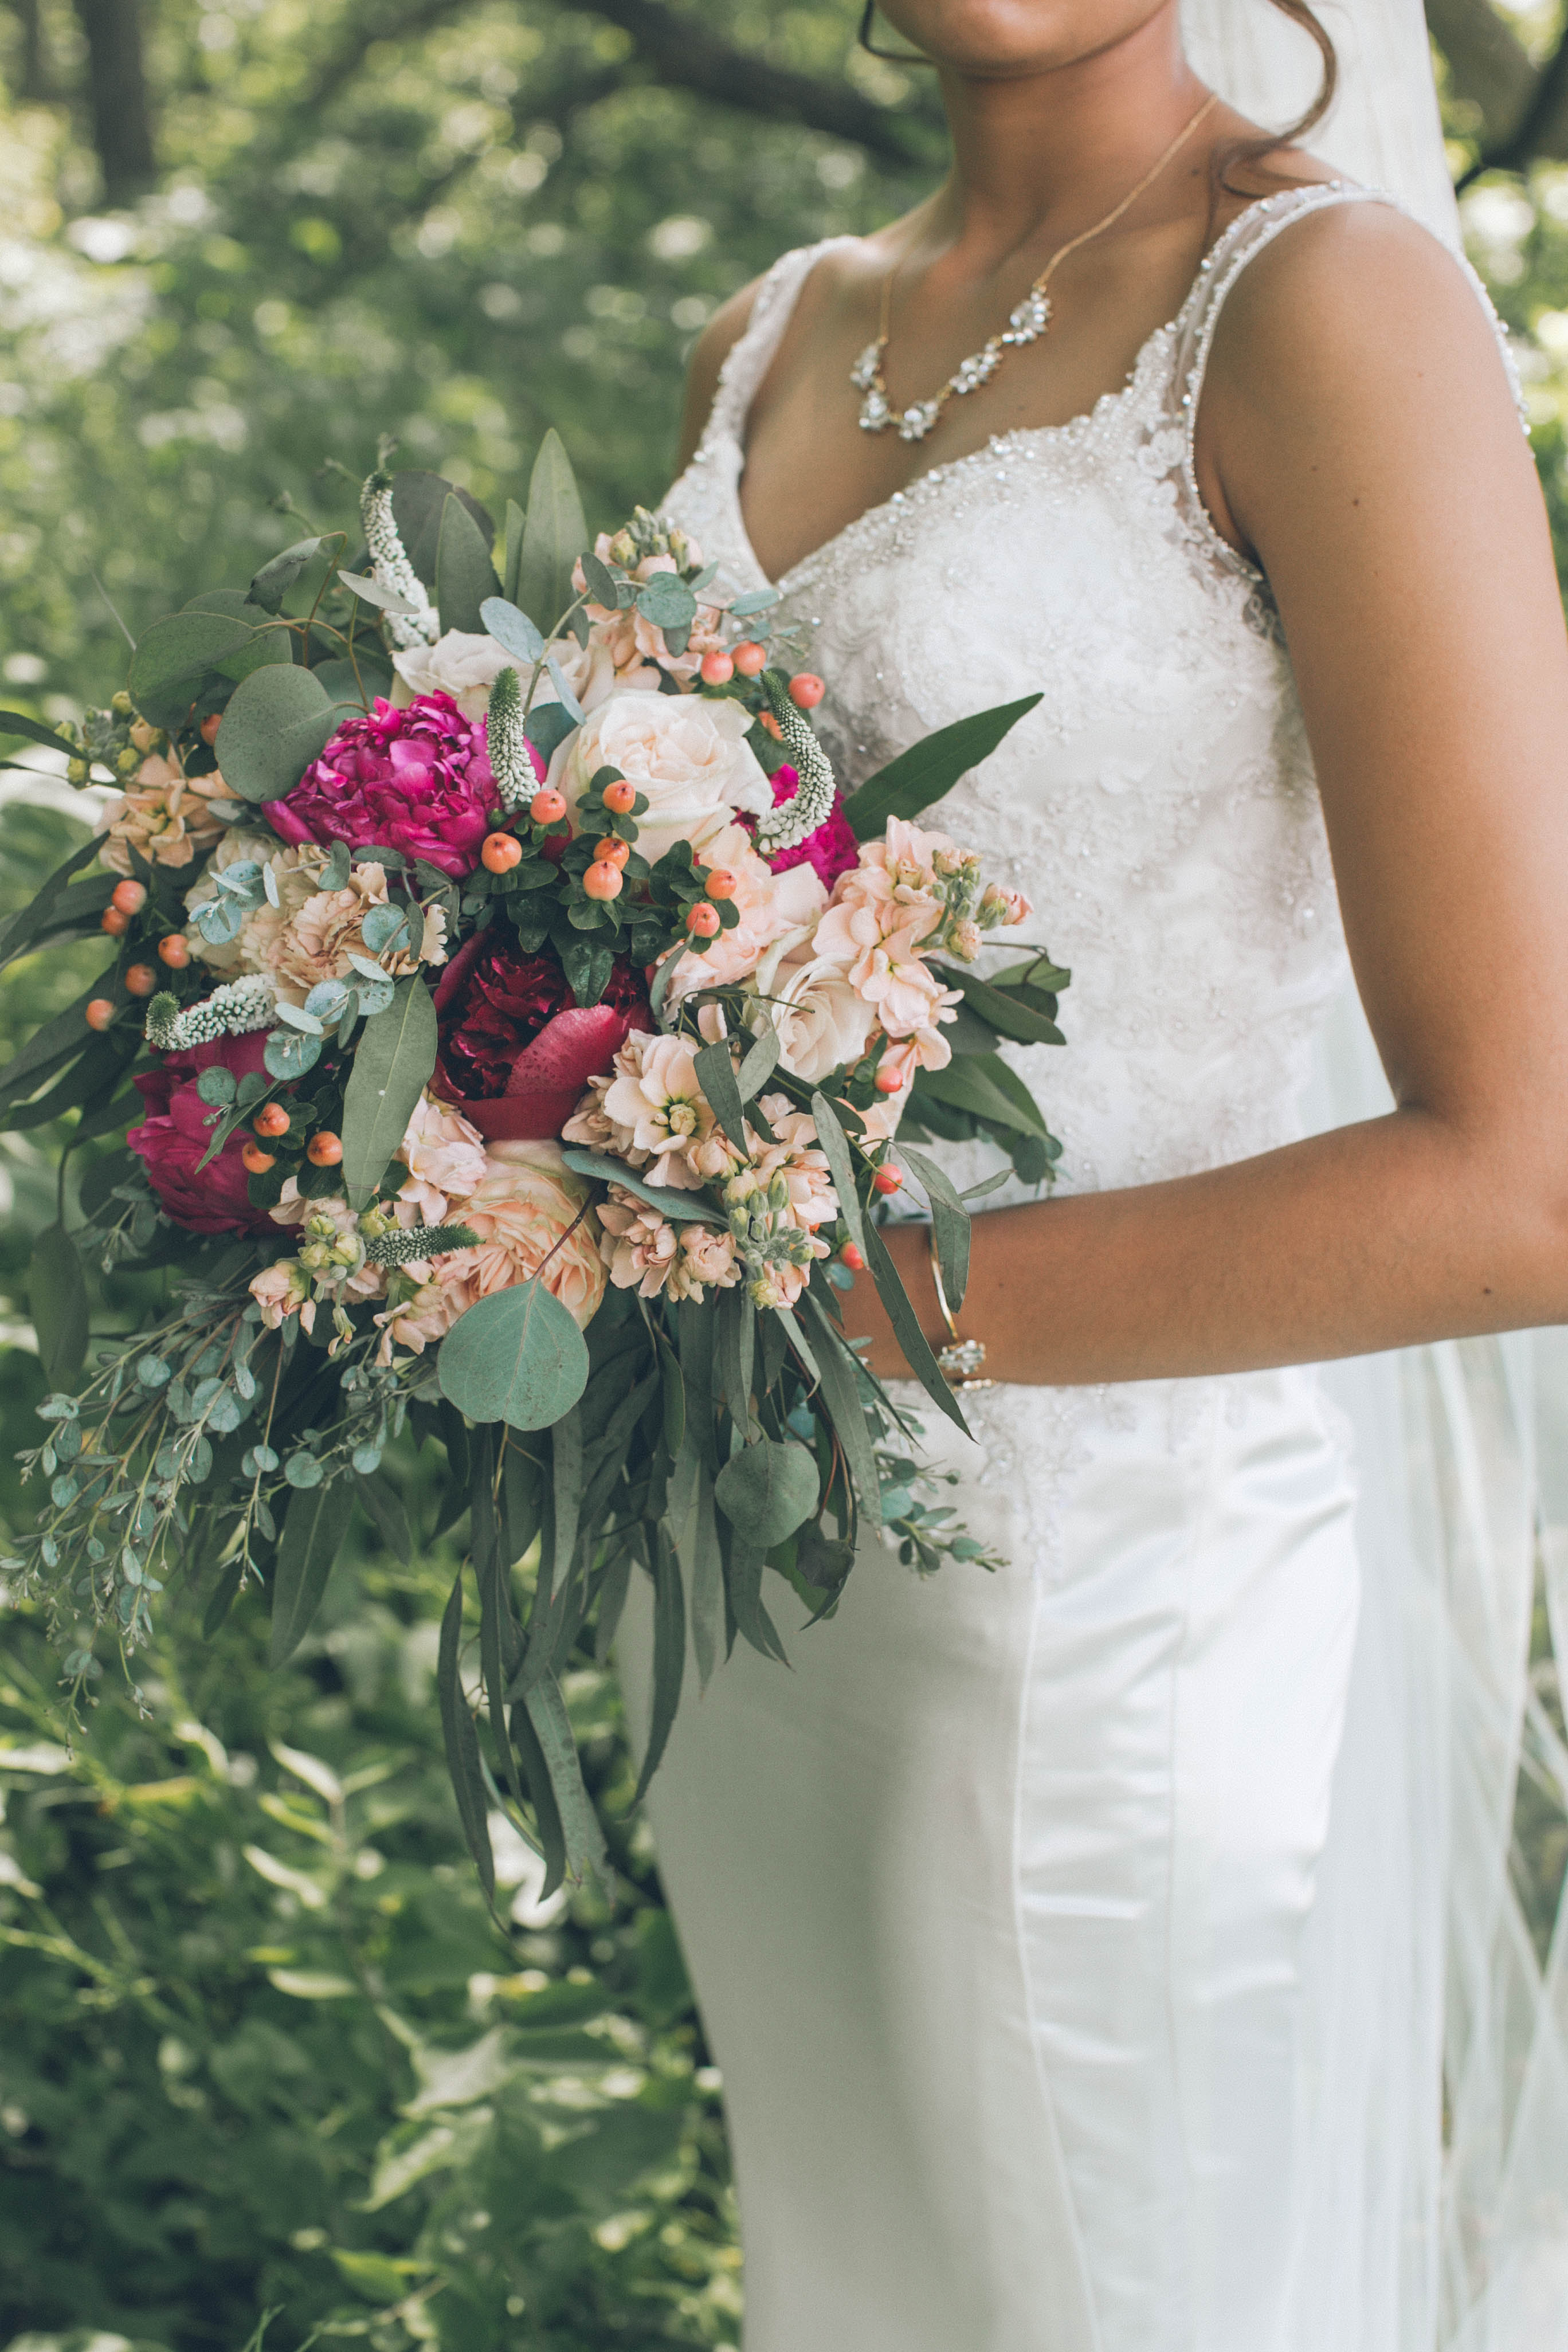 Bridal bouquet with hot pink peonies, peach stock and pink roses with eucalyptus.